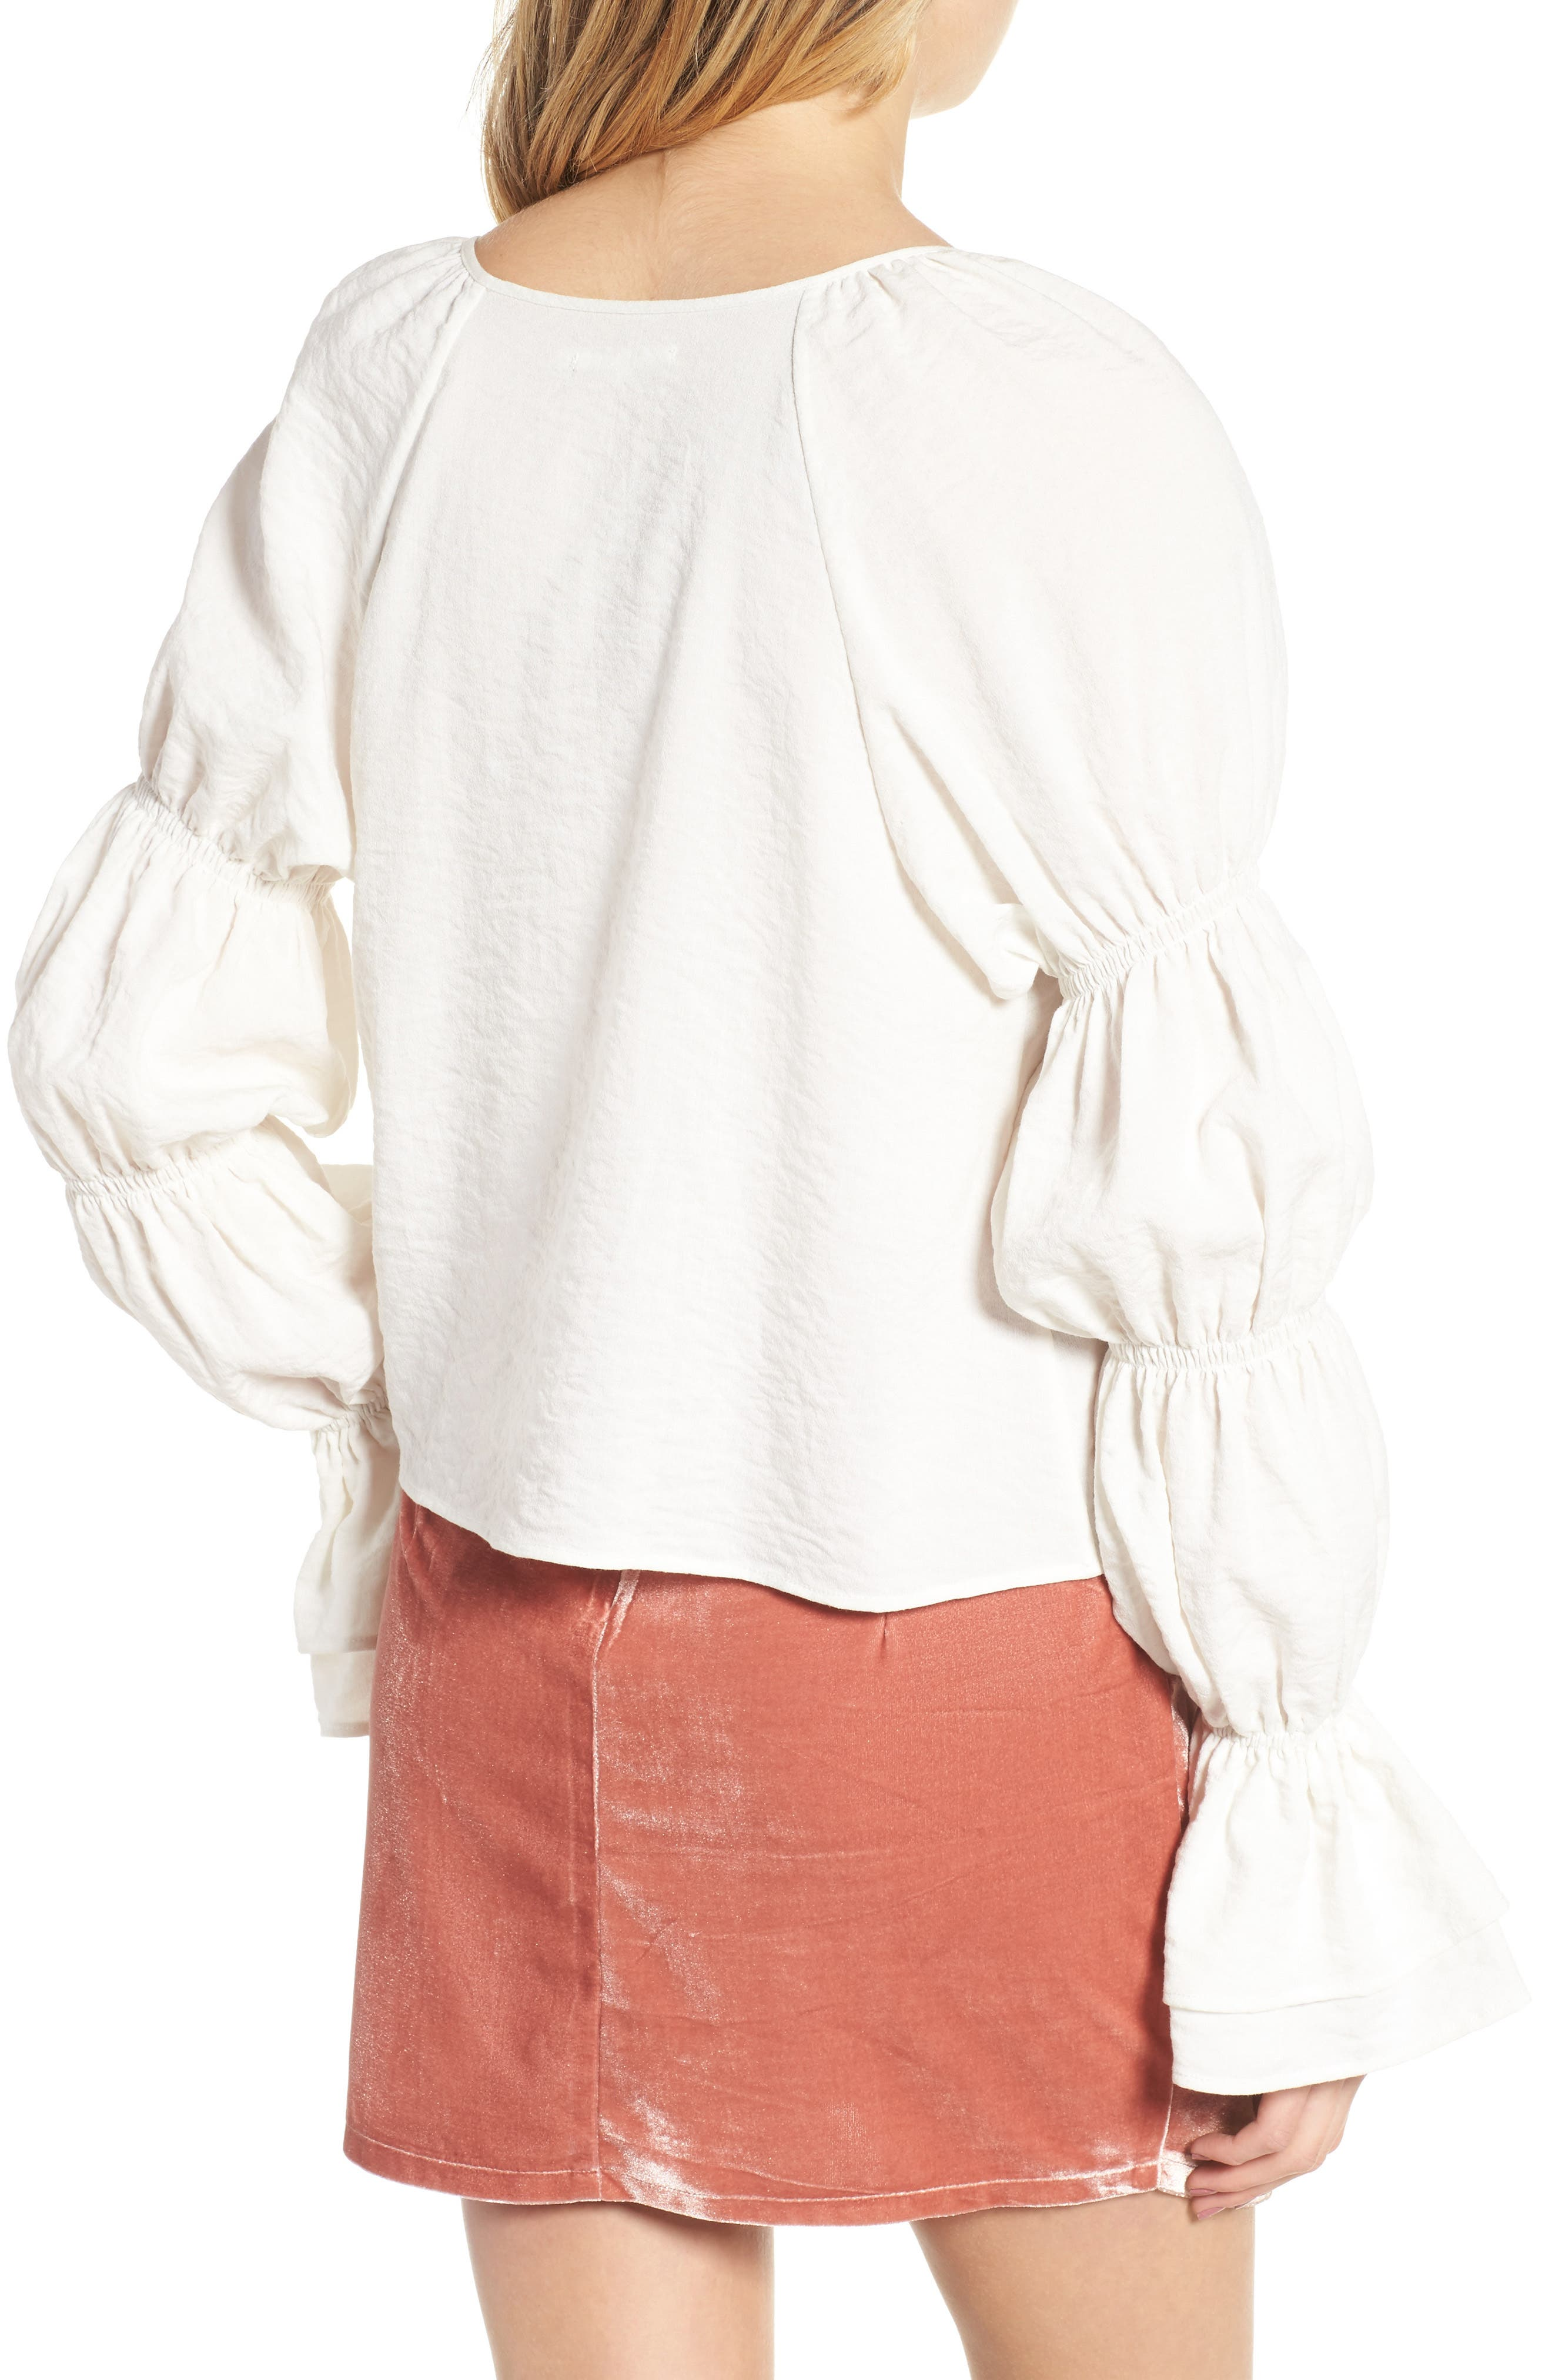 East Puff Sleeve Top,                             Alternate thumbnail 2, color,                             Ivory